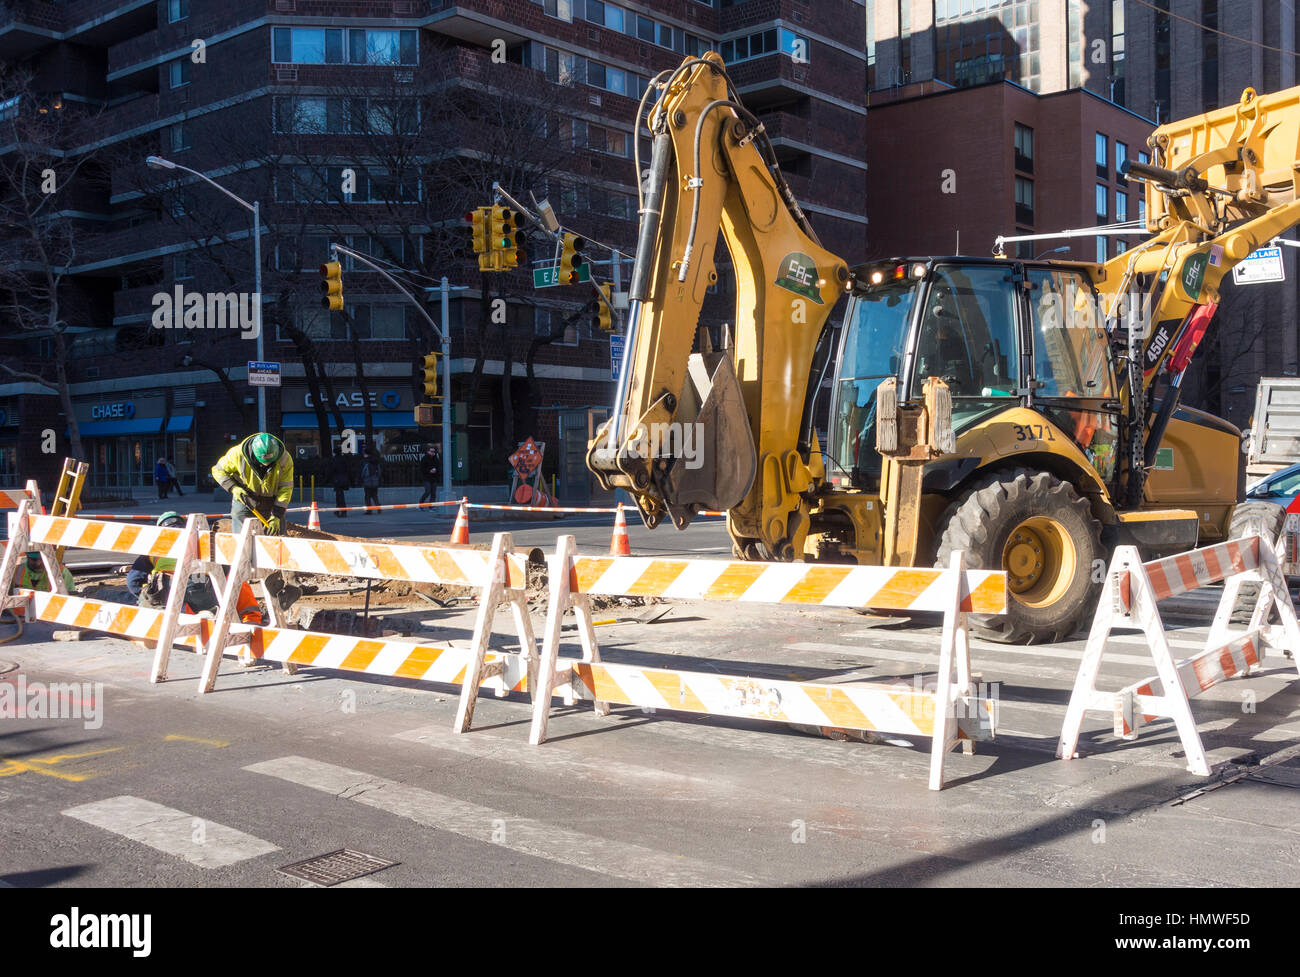 Construction work on the infrastructure of New York City - Stock Image